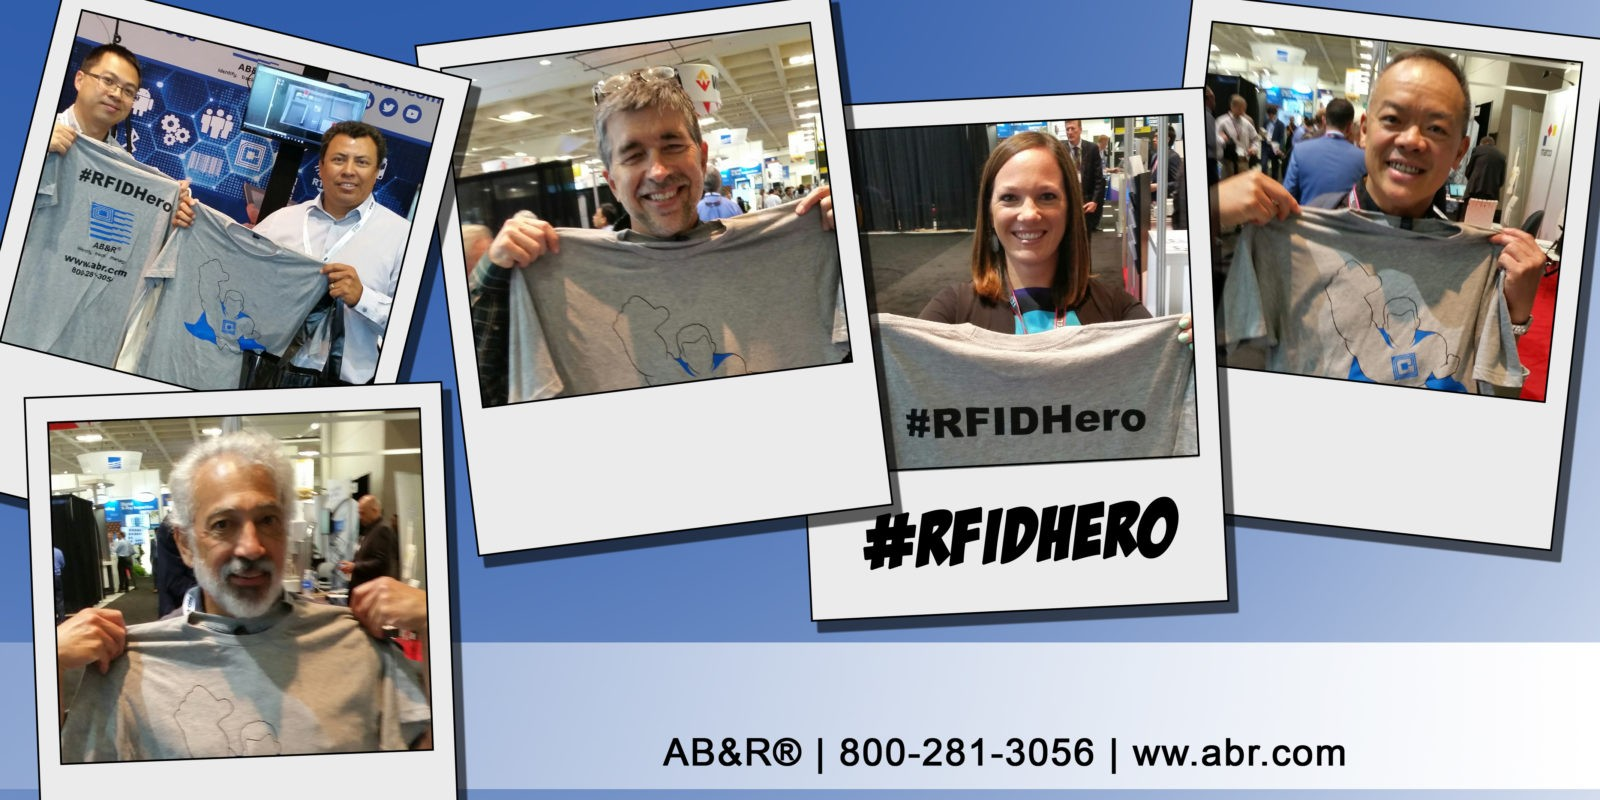 RFID Hero: Real Faces